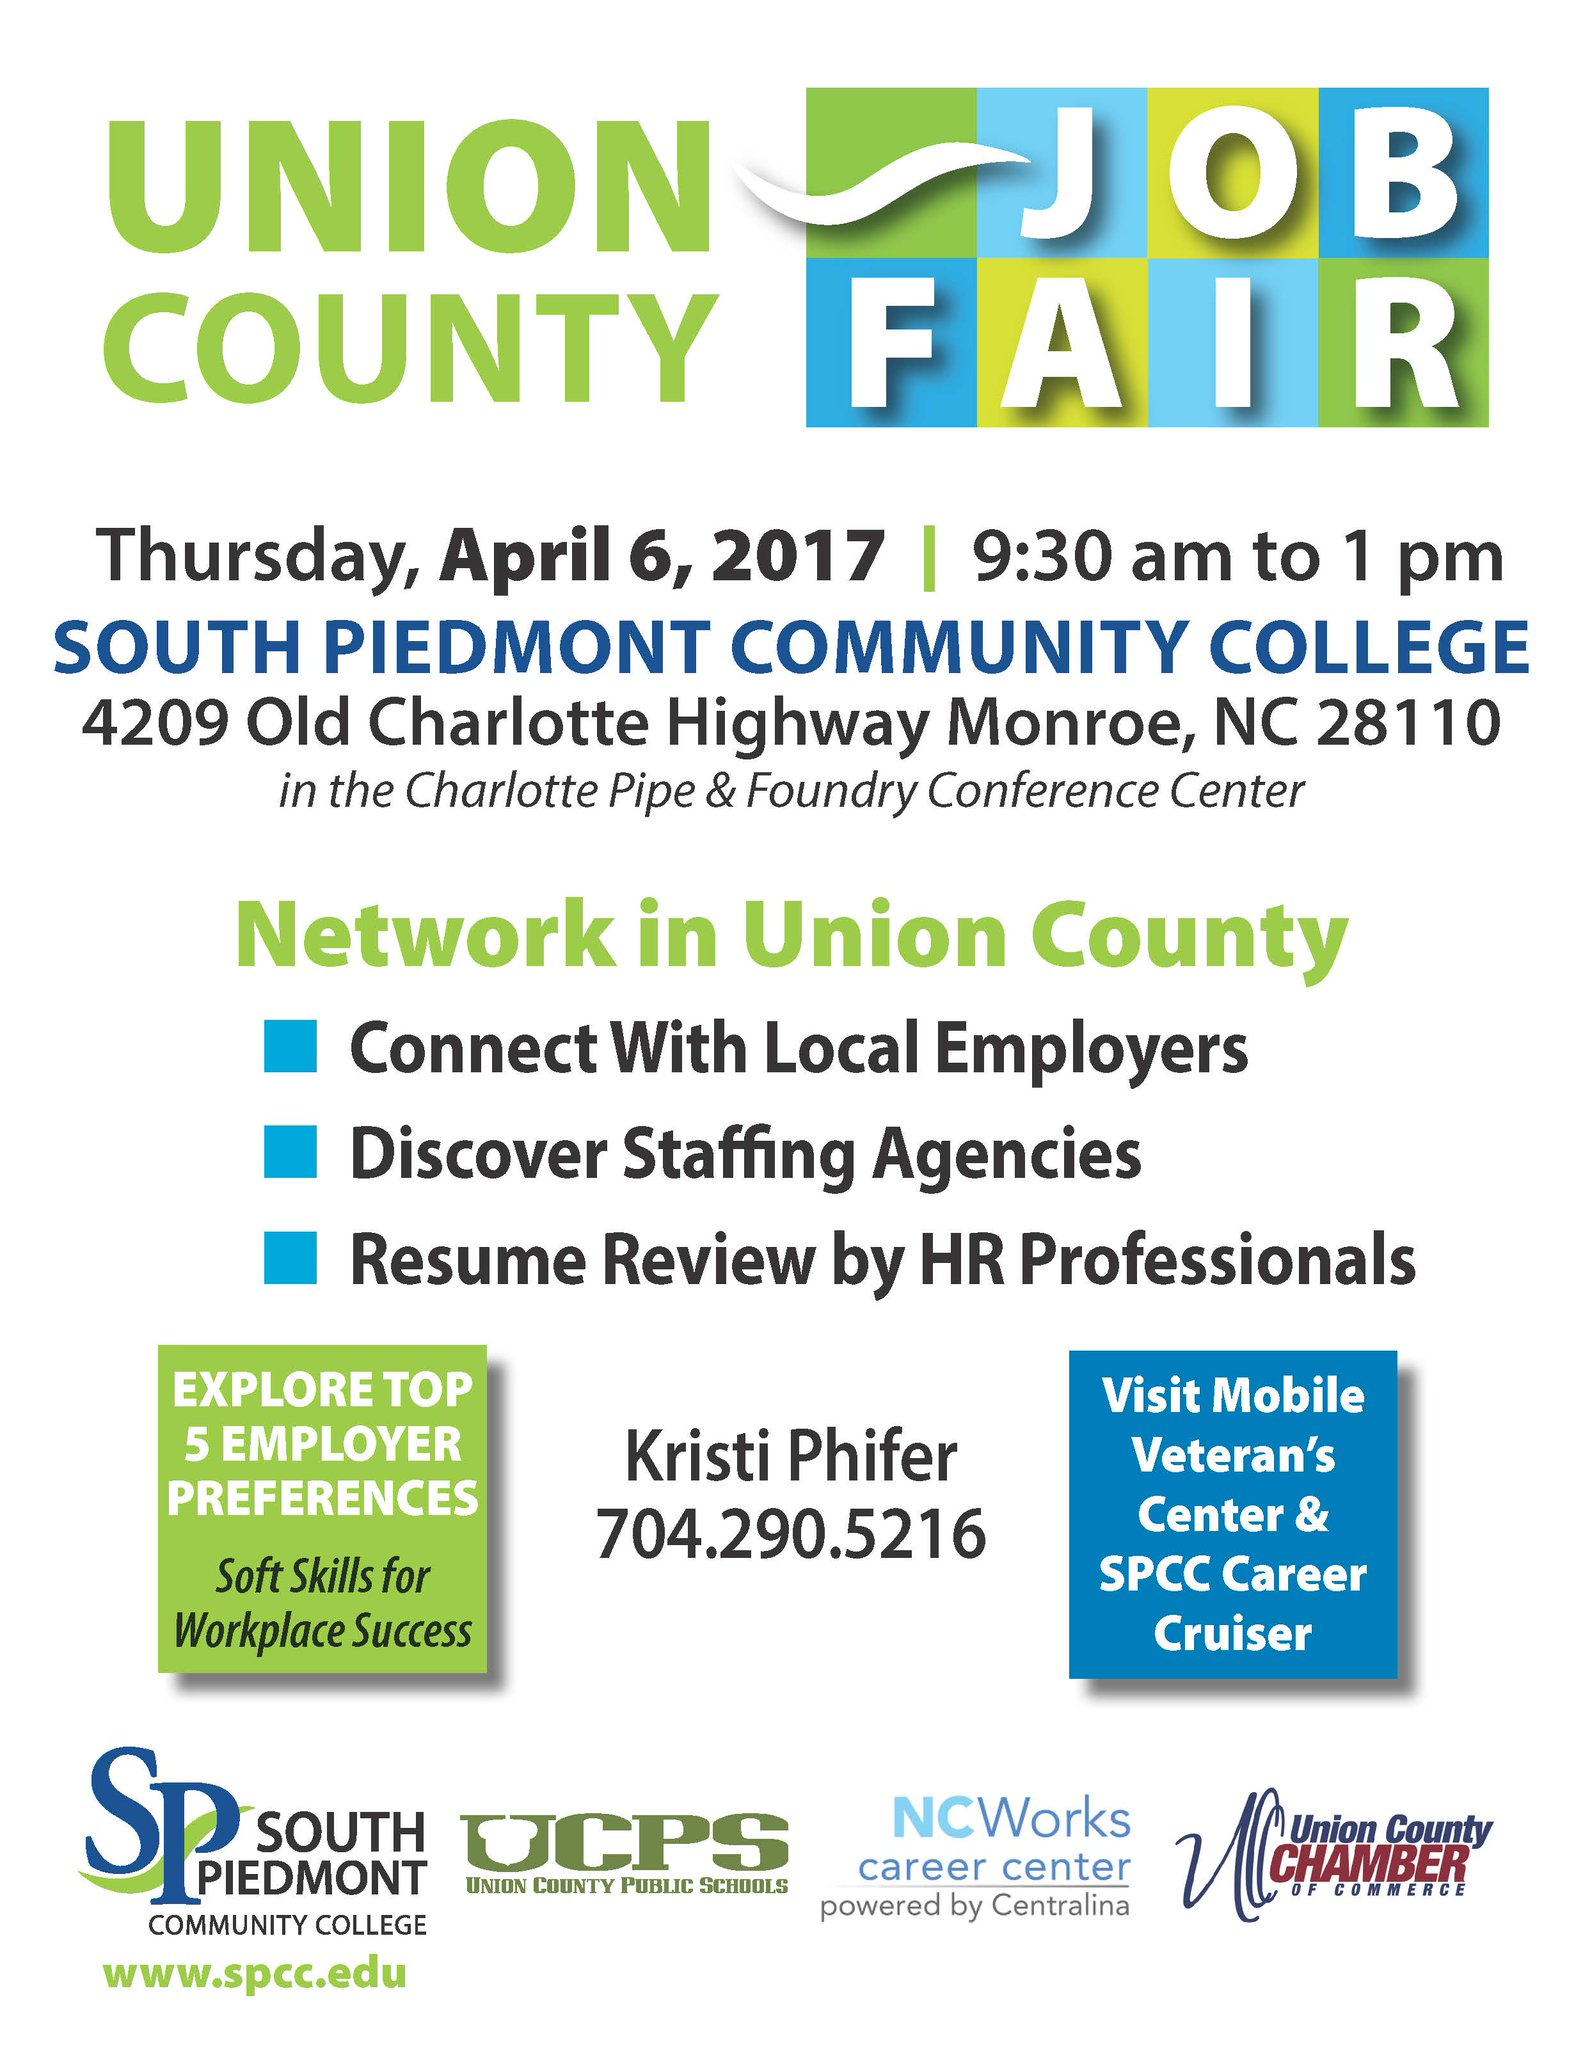 union county nc on the union county job fair will be union county nc on the union county job fair will be held at spcc on 4 6 at 9 30 am come out connect local employers including union